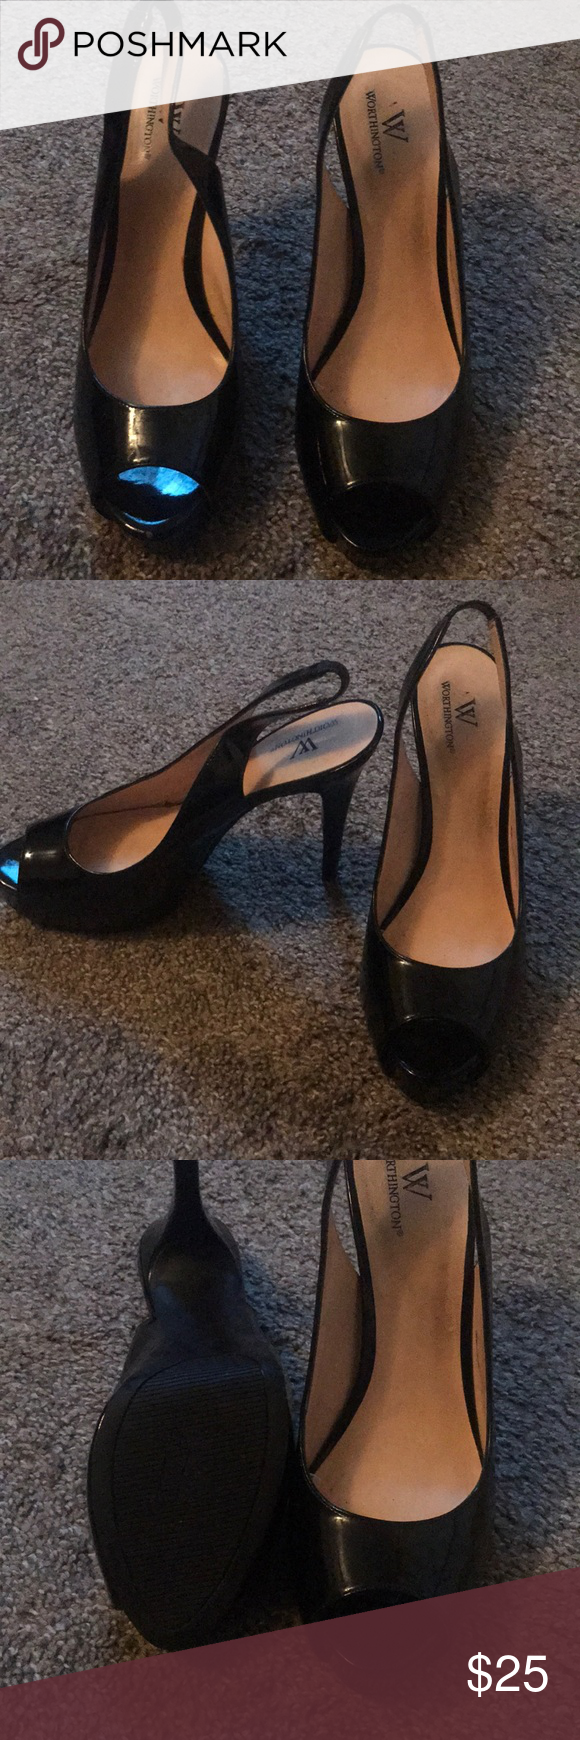 6e6caf3e58f92 Worthington women s pumps These peep-toe pumps are perfect for a day to  night platform pump and a wardrobe staple! 3 4 hidden platform 4 covered  heel ...